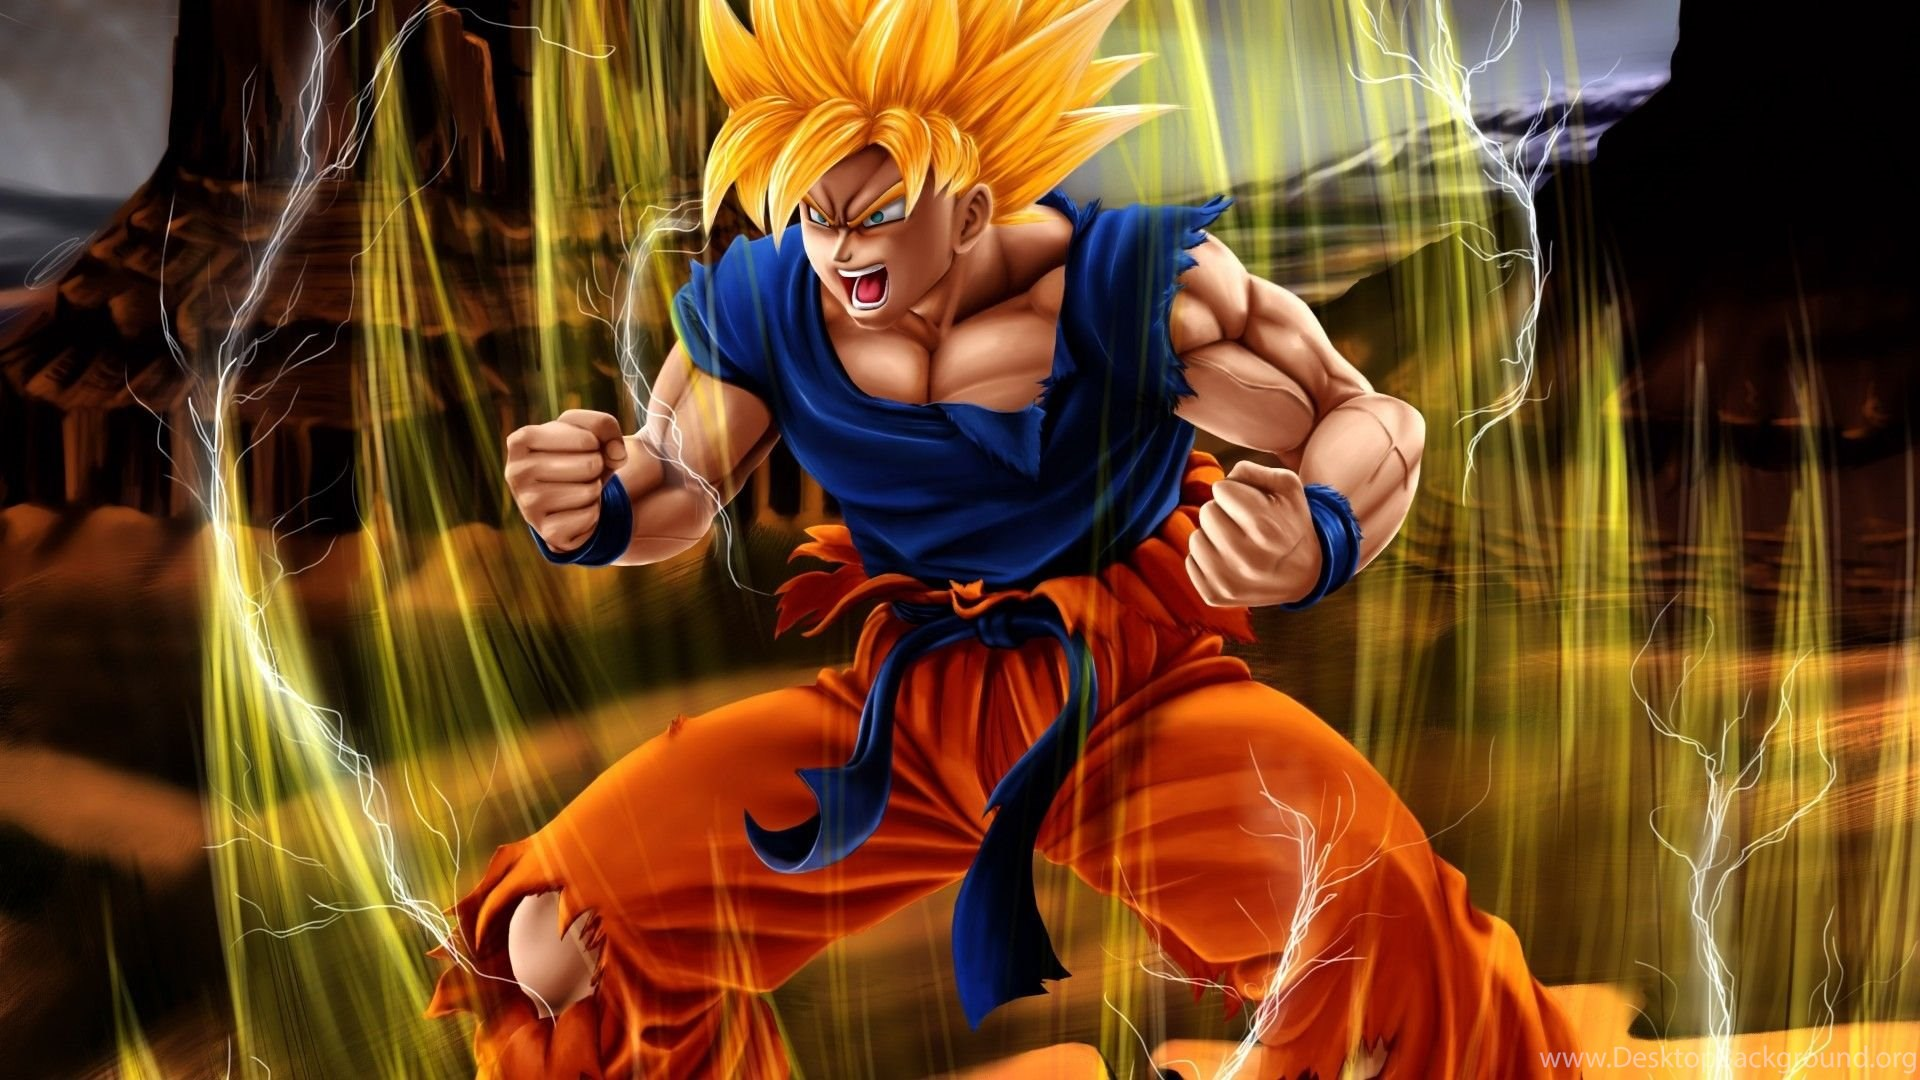 Awesome Son Goku Hd Wallpapers Desktop Background